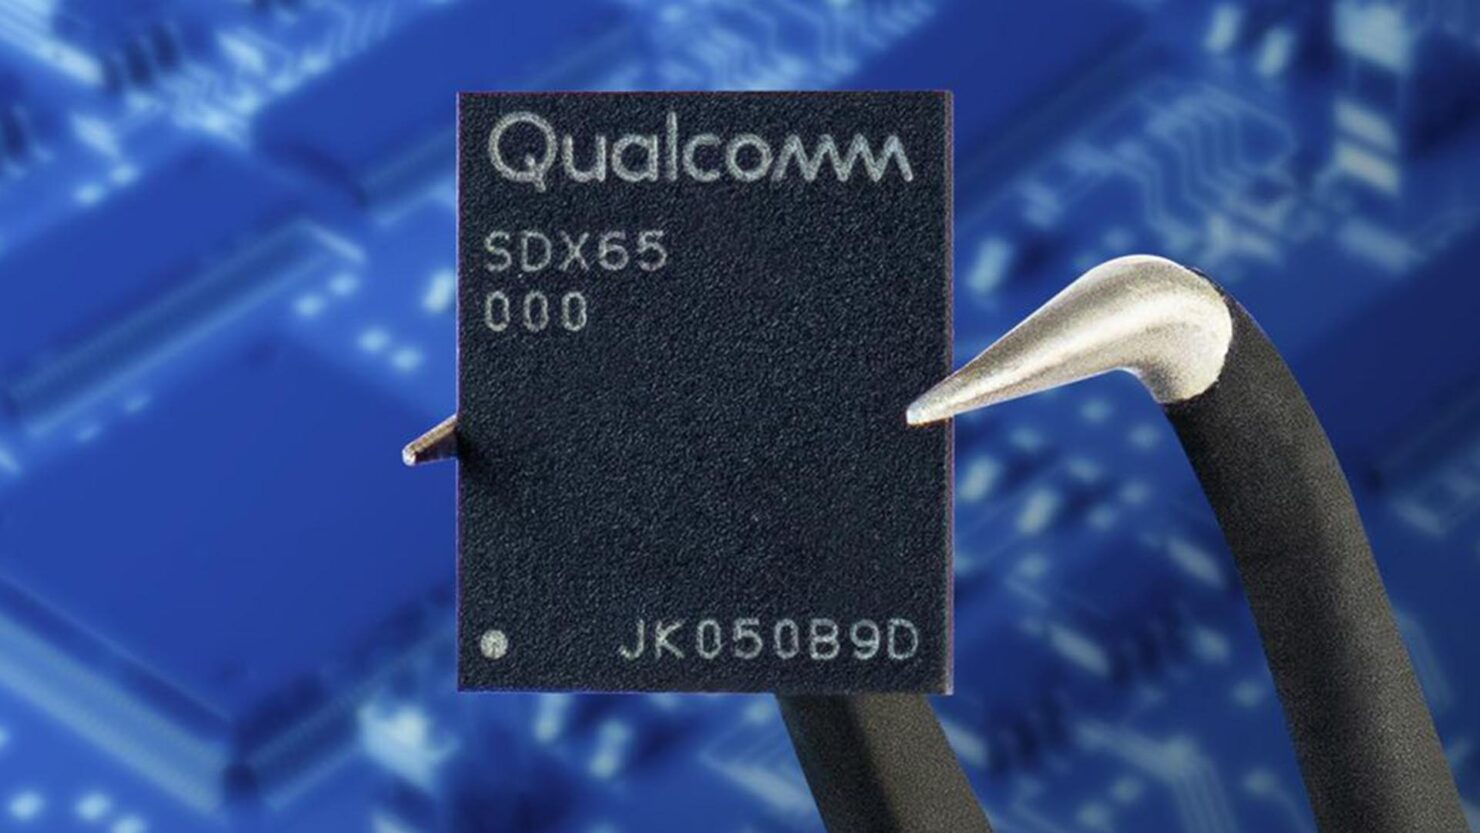 Snapdragon X65 5G Modem Now Supports Wider mmWave Coverage, Improved Power Efficiency to Accommodate 2022 iPhone Range